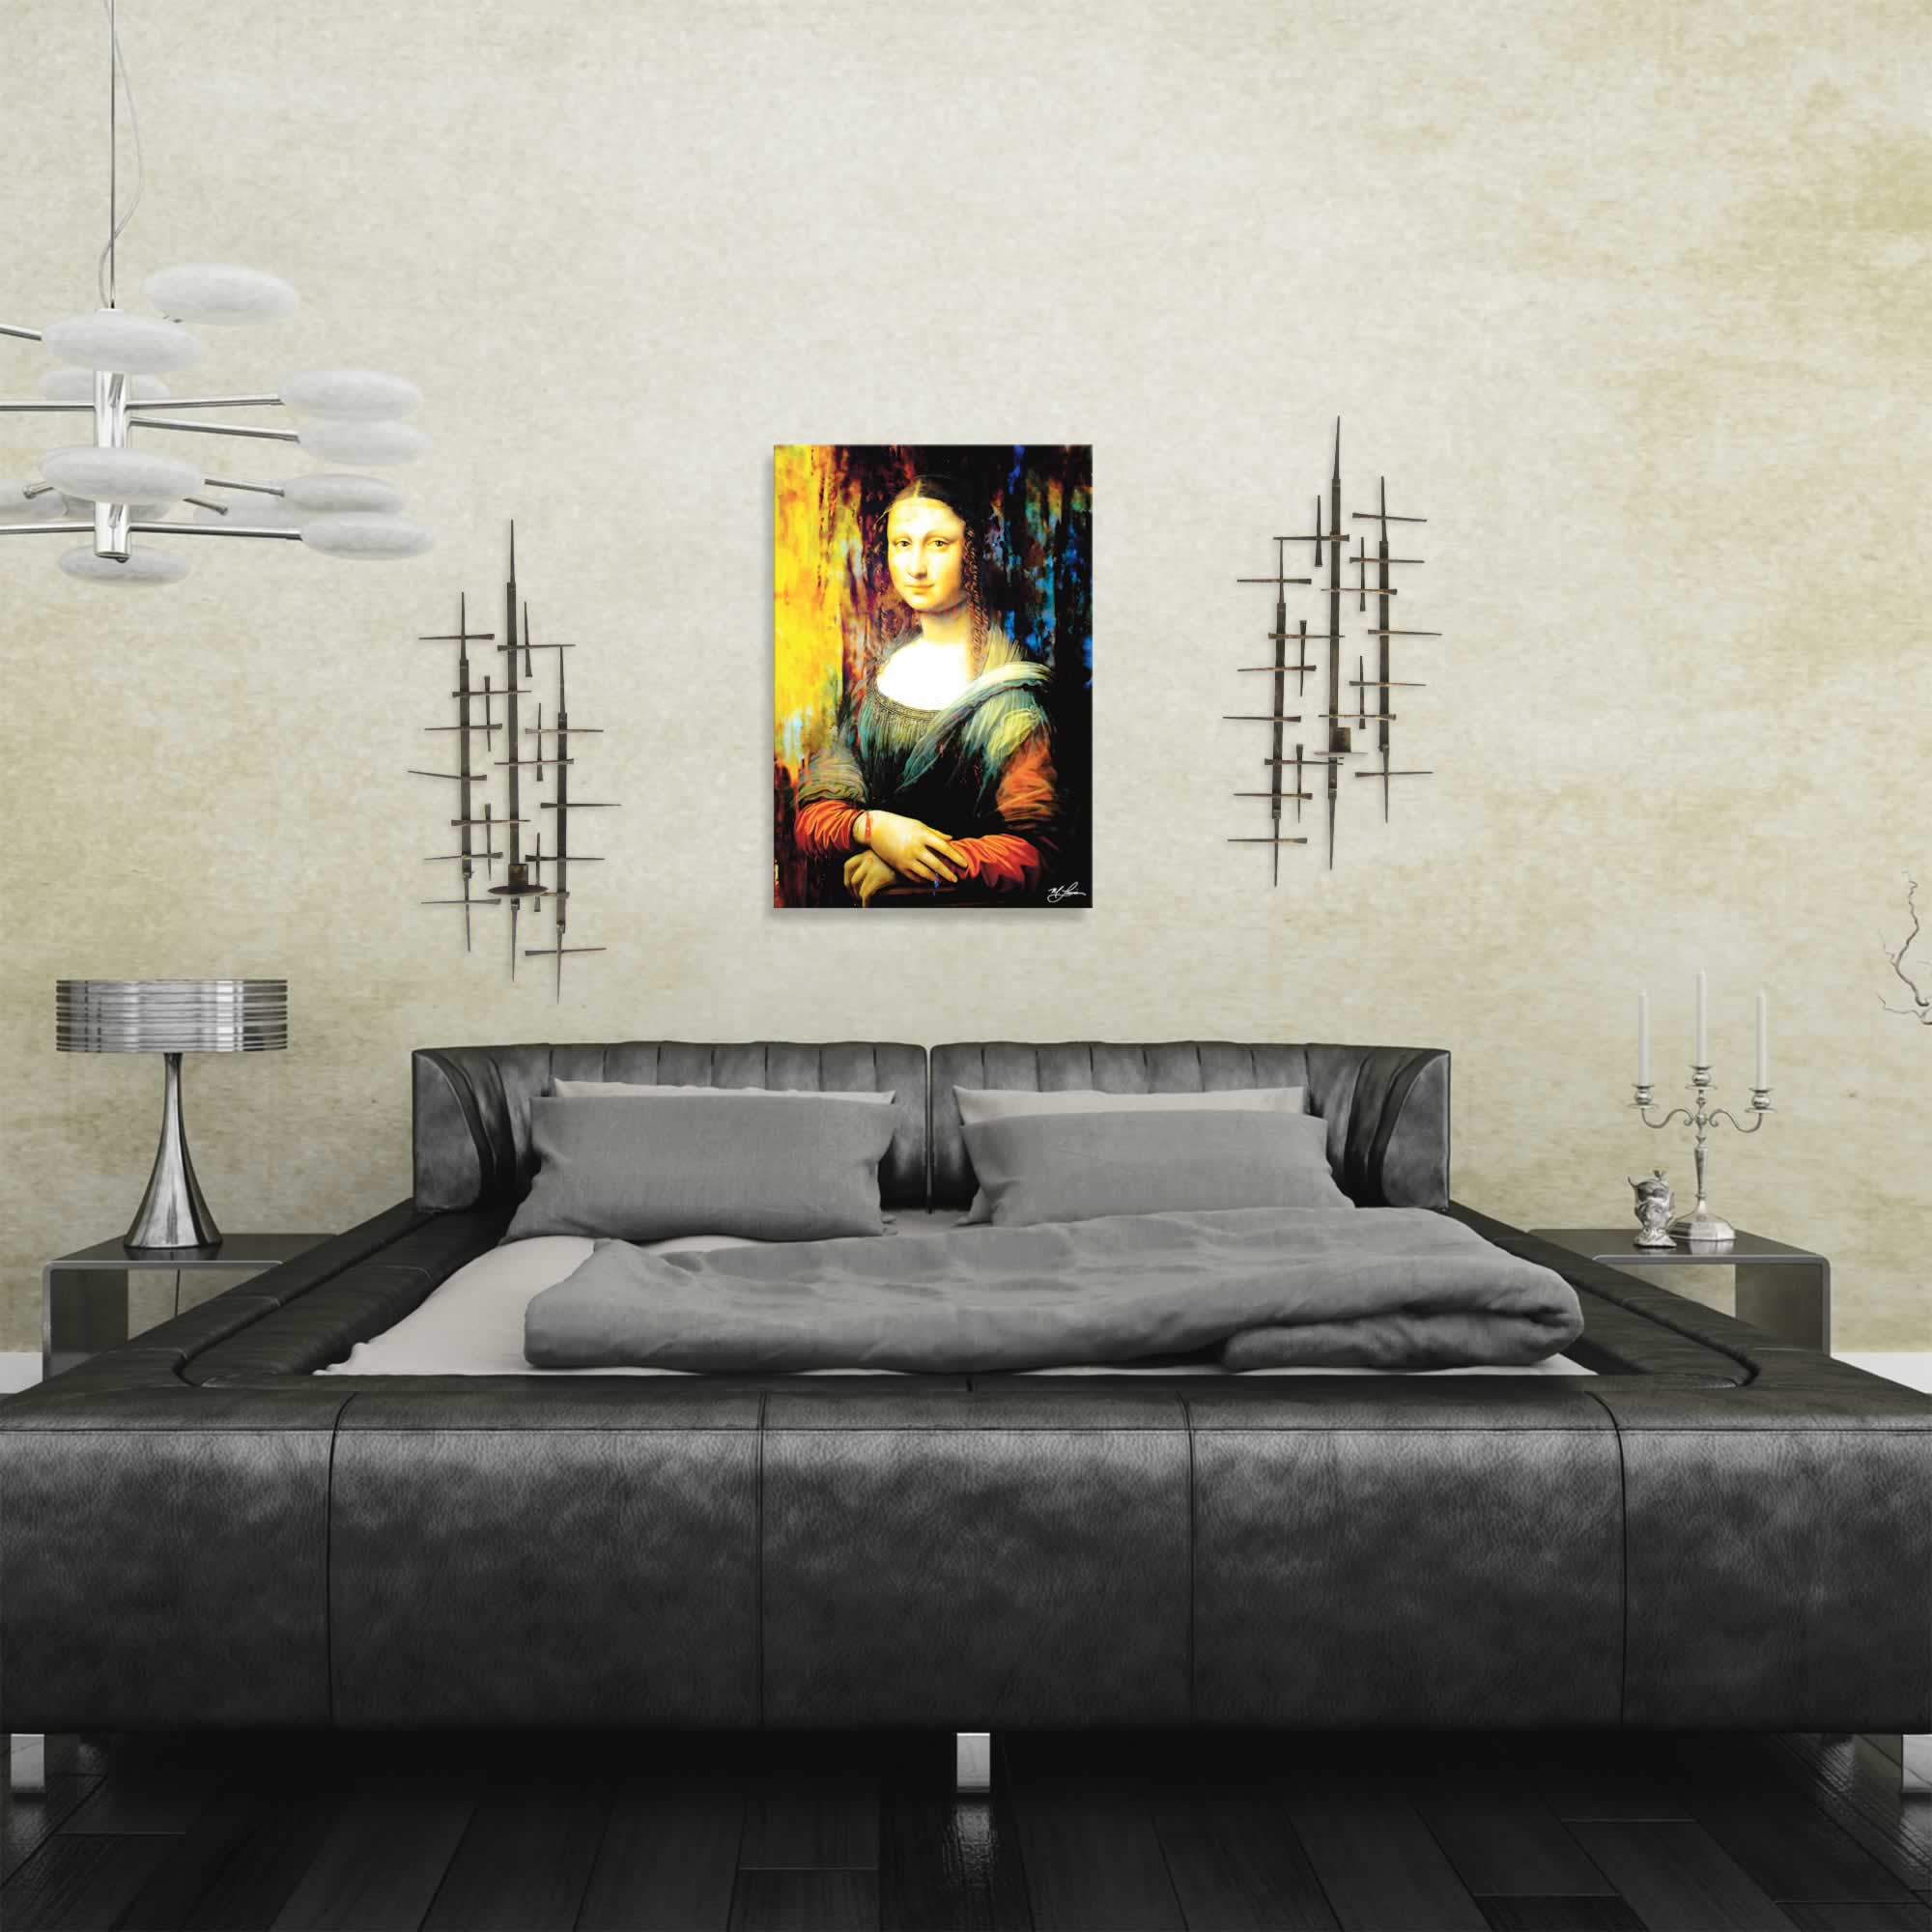 Mona Lisa Ageless Charm | Pop Art Painting by Mark Lewis, Signed & Numbered Limited Edition - ML0030